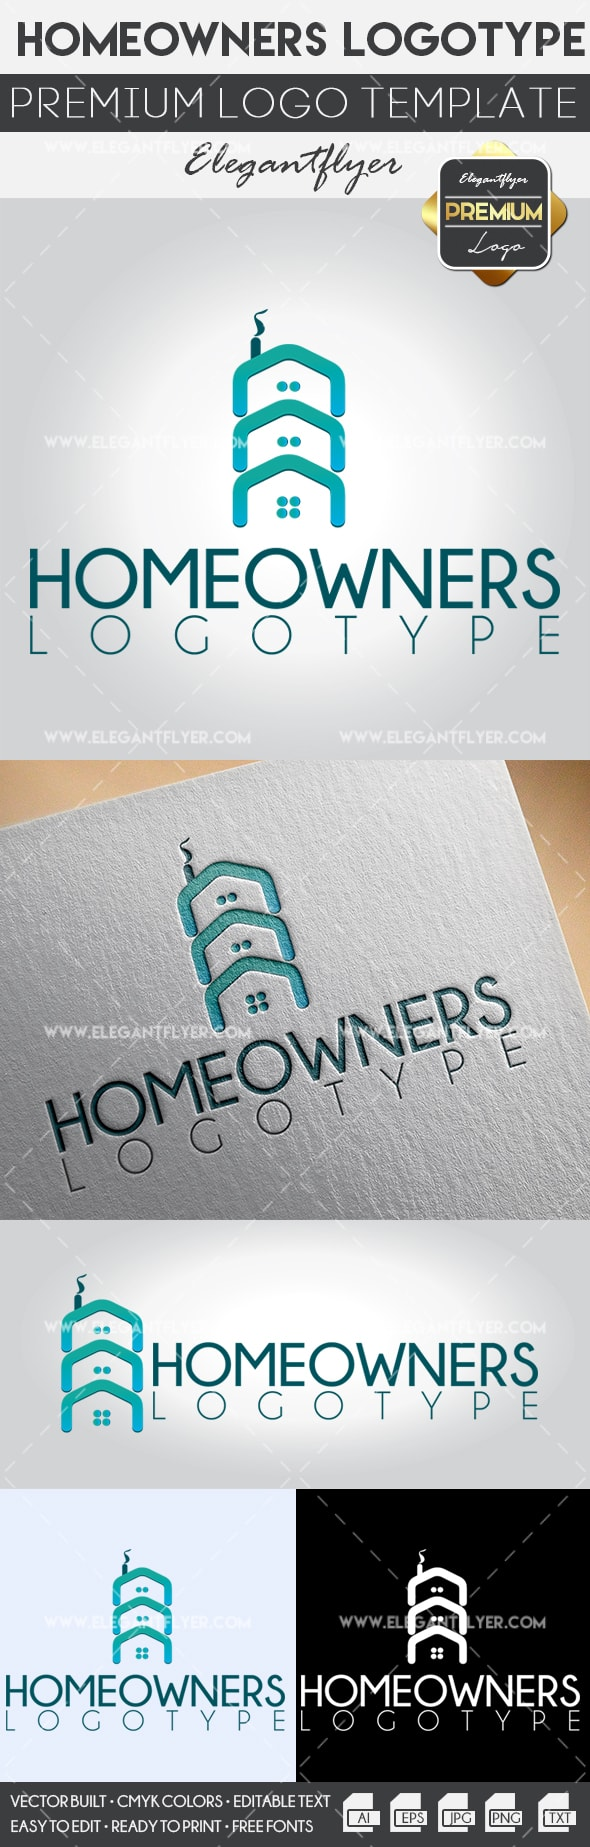 Homeowners – Premium Logo Template